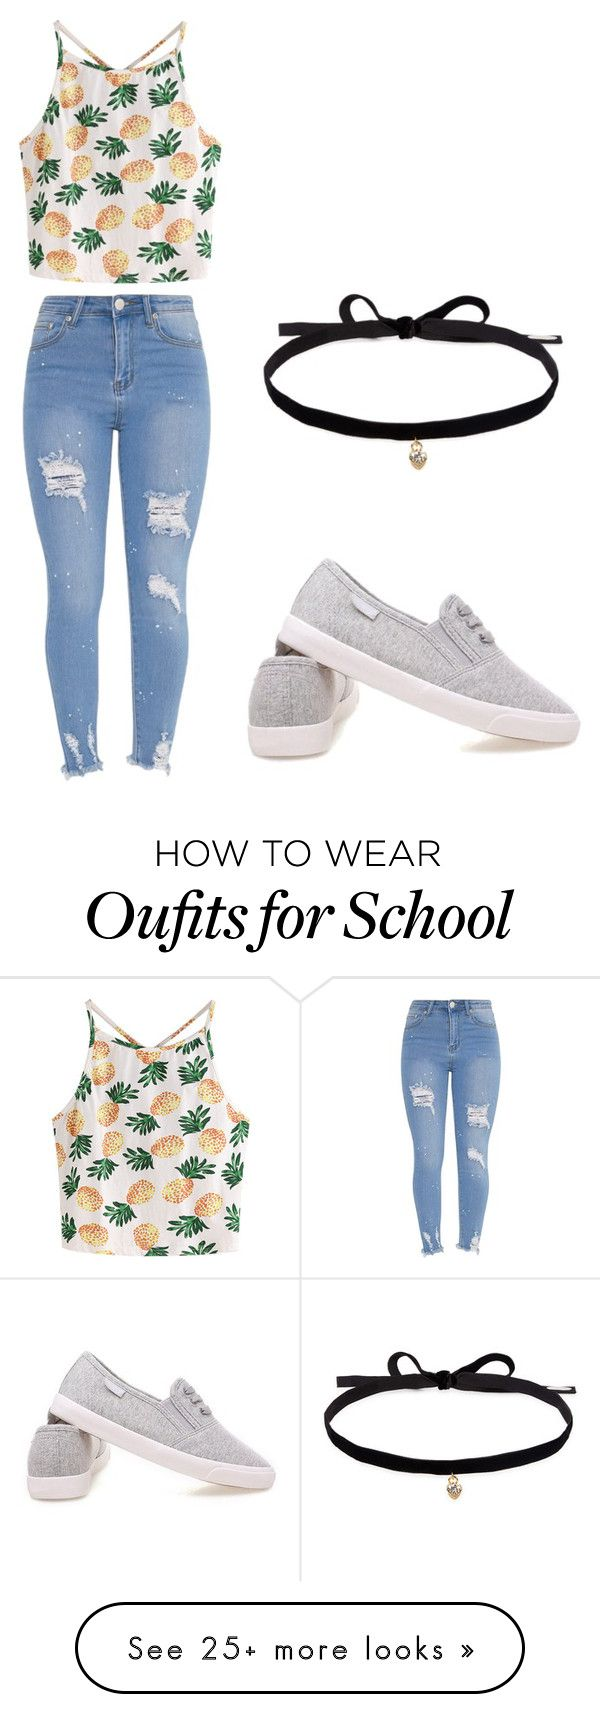 """""""Back To School Series"""" by ememlove22 on Polyvore featuring WithChic and Joomi Lim"""